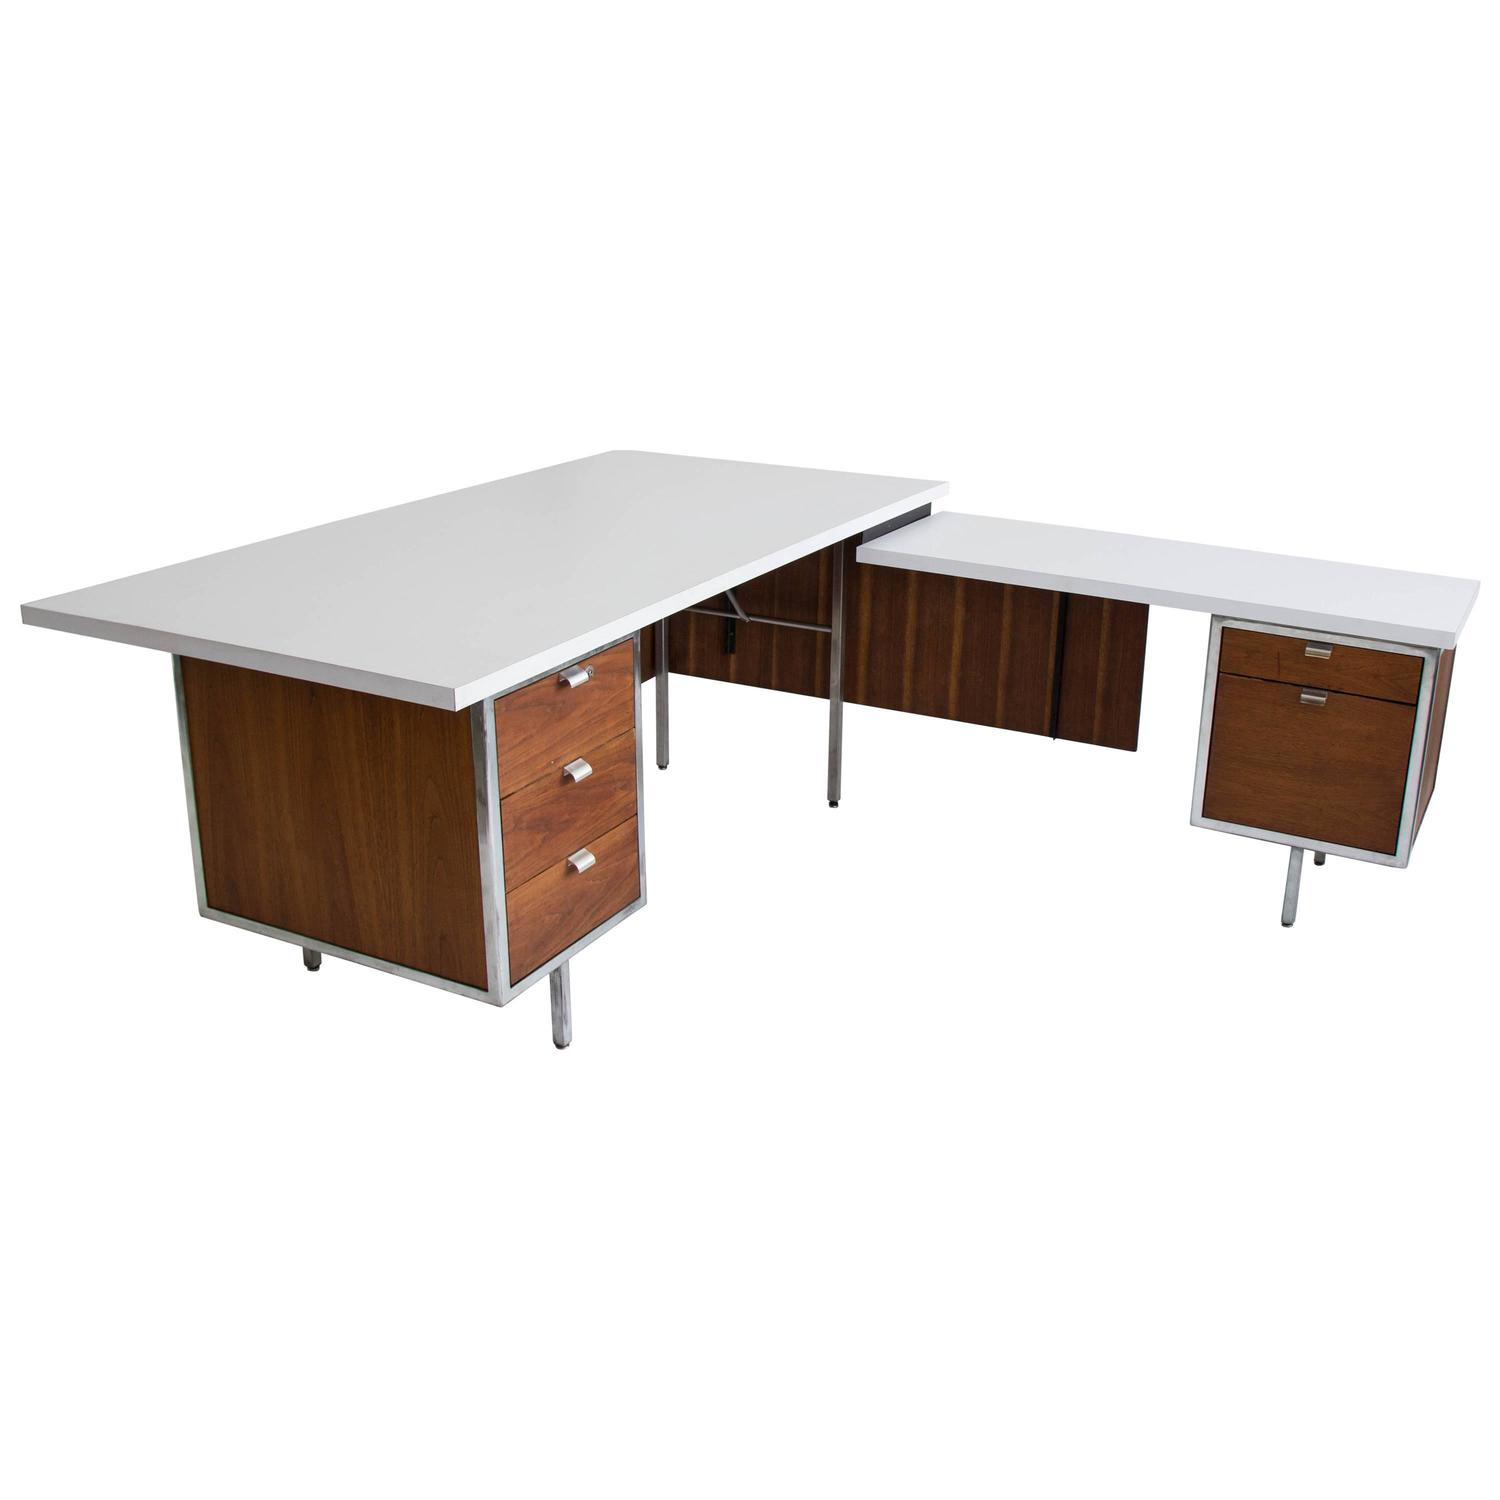 Executive desk and return by robert john for sale at stdibs